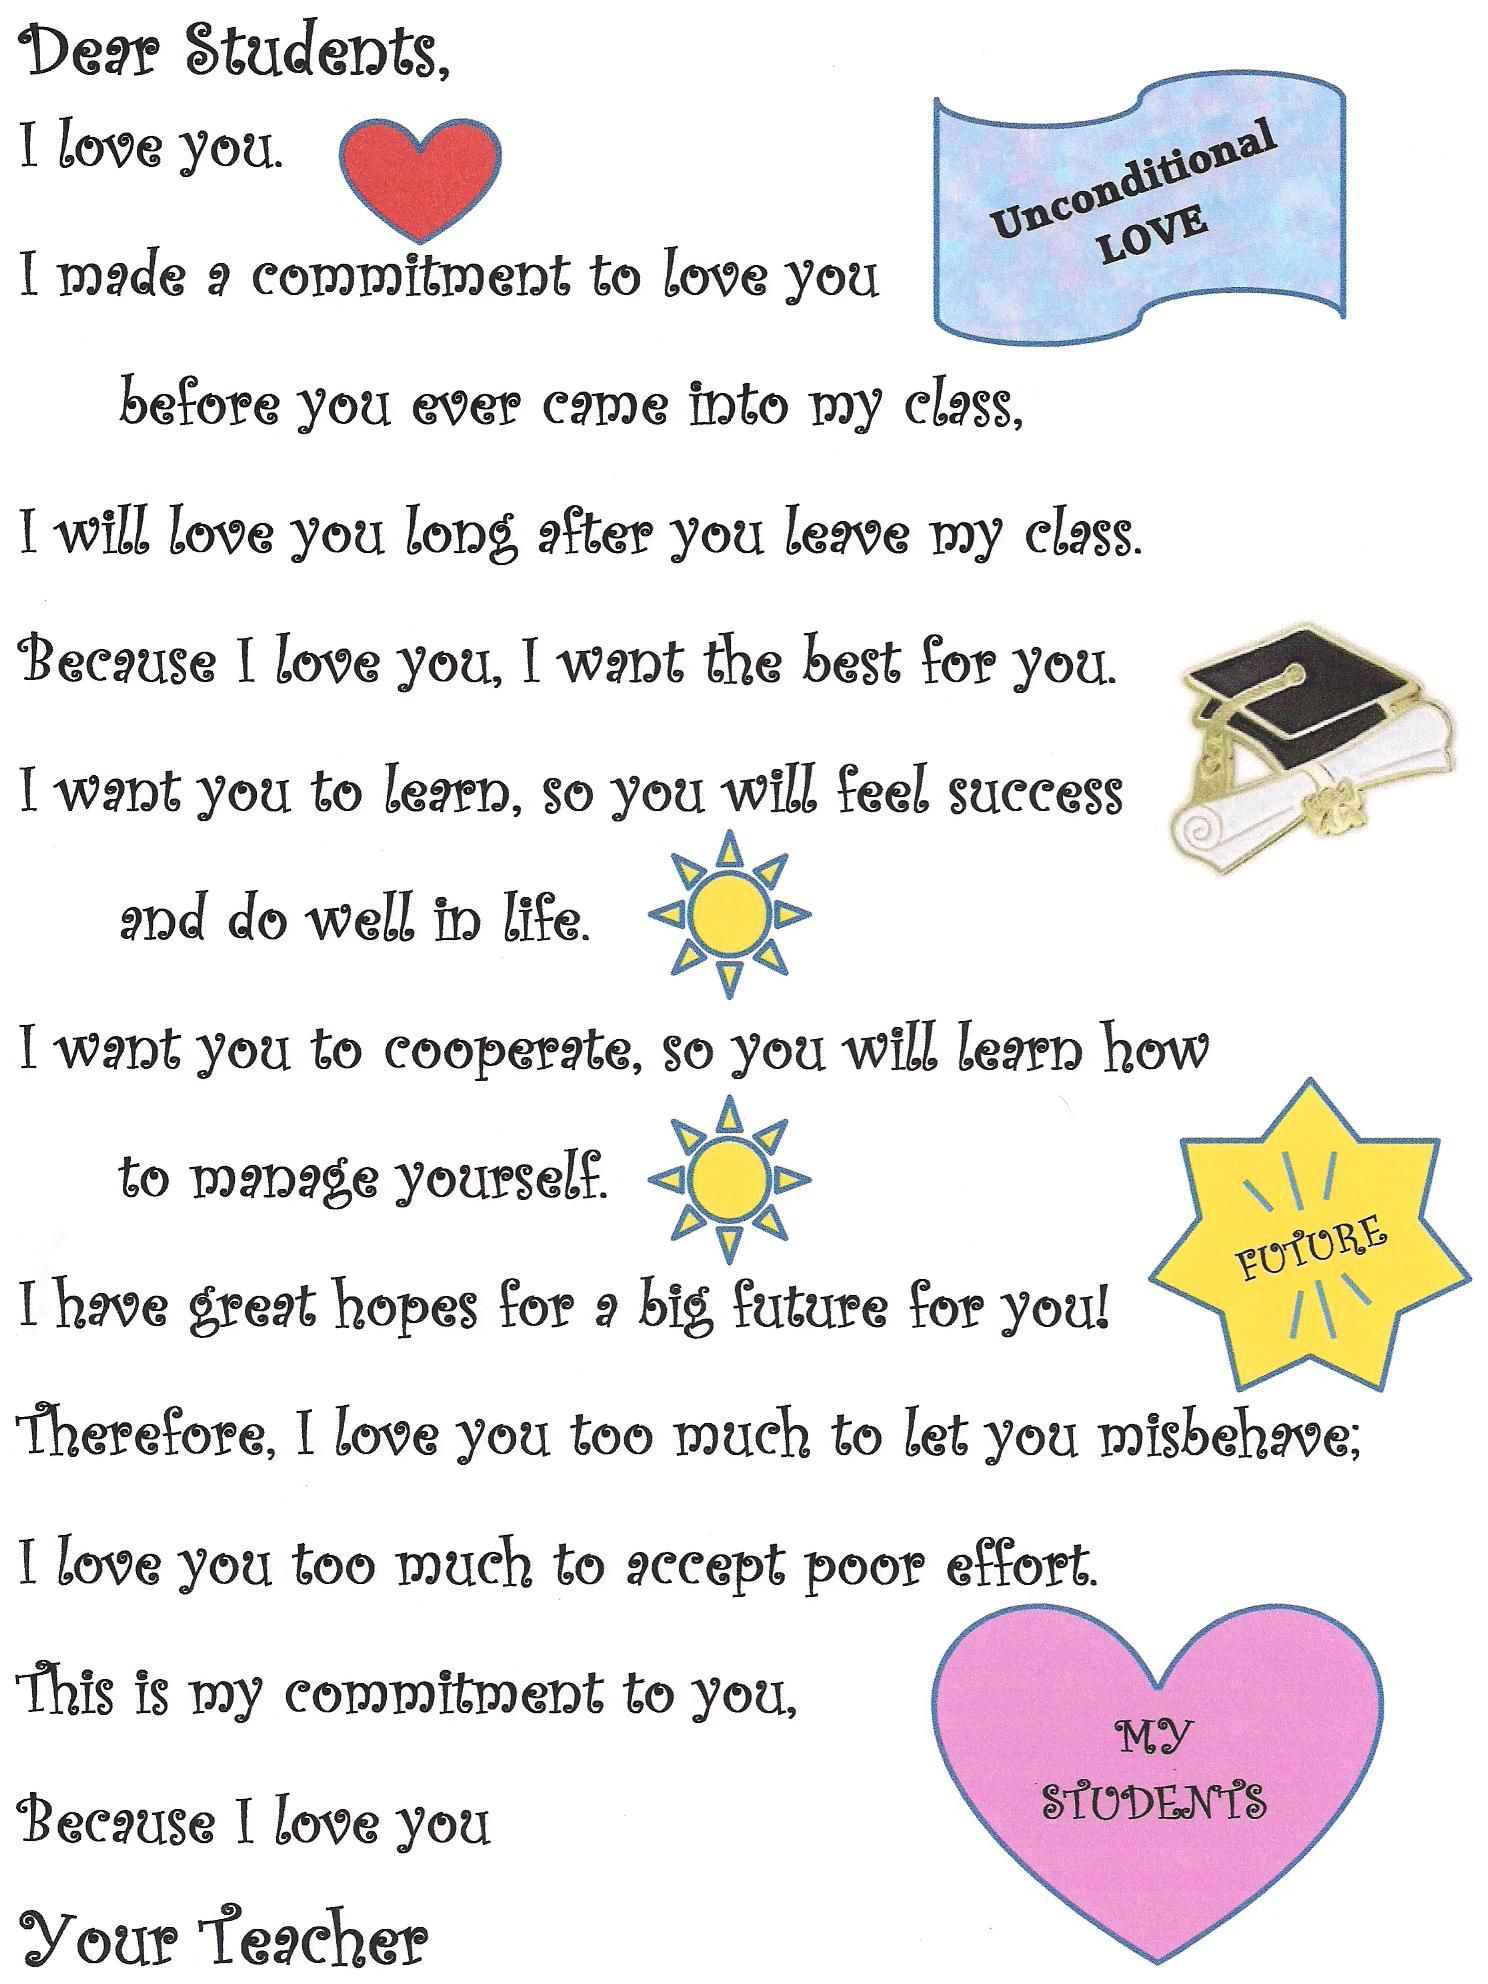 Educators Are Asking For Loving >> Unconditional Love A Teacher S Note To Her Students